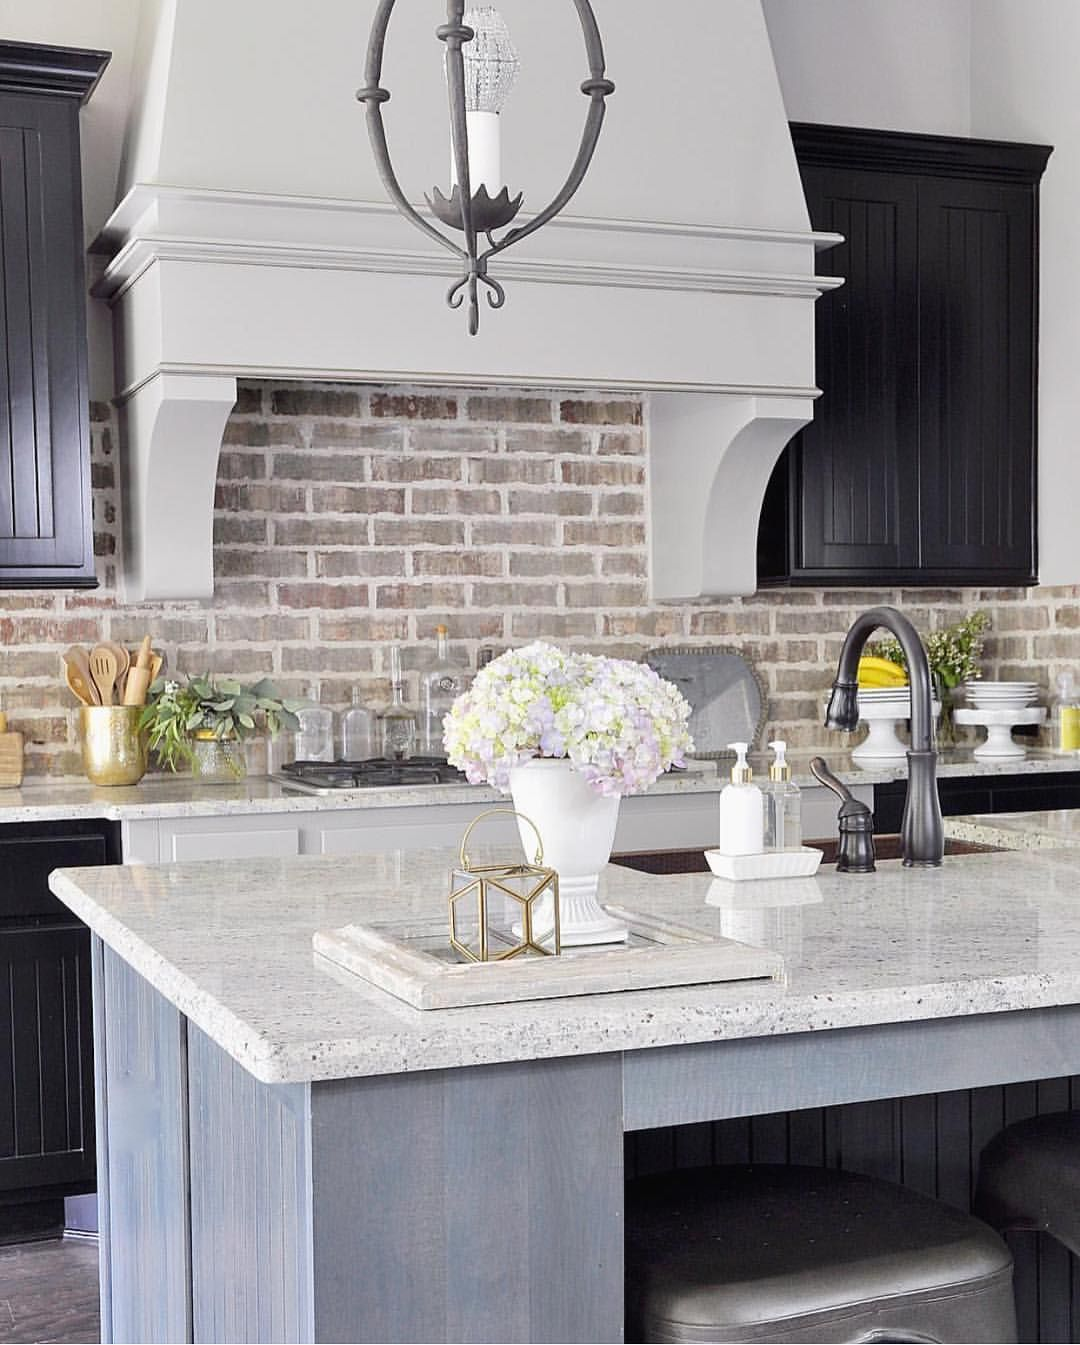 Pretty Modern Rustic Kitchen With Brick Style Backsplash